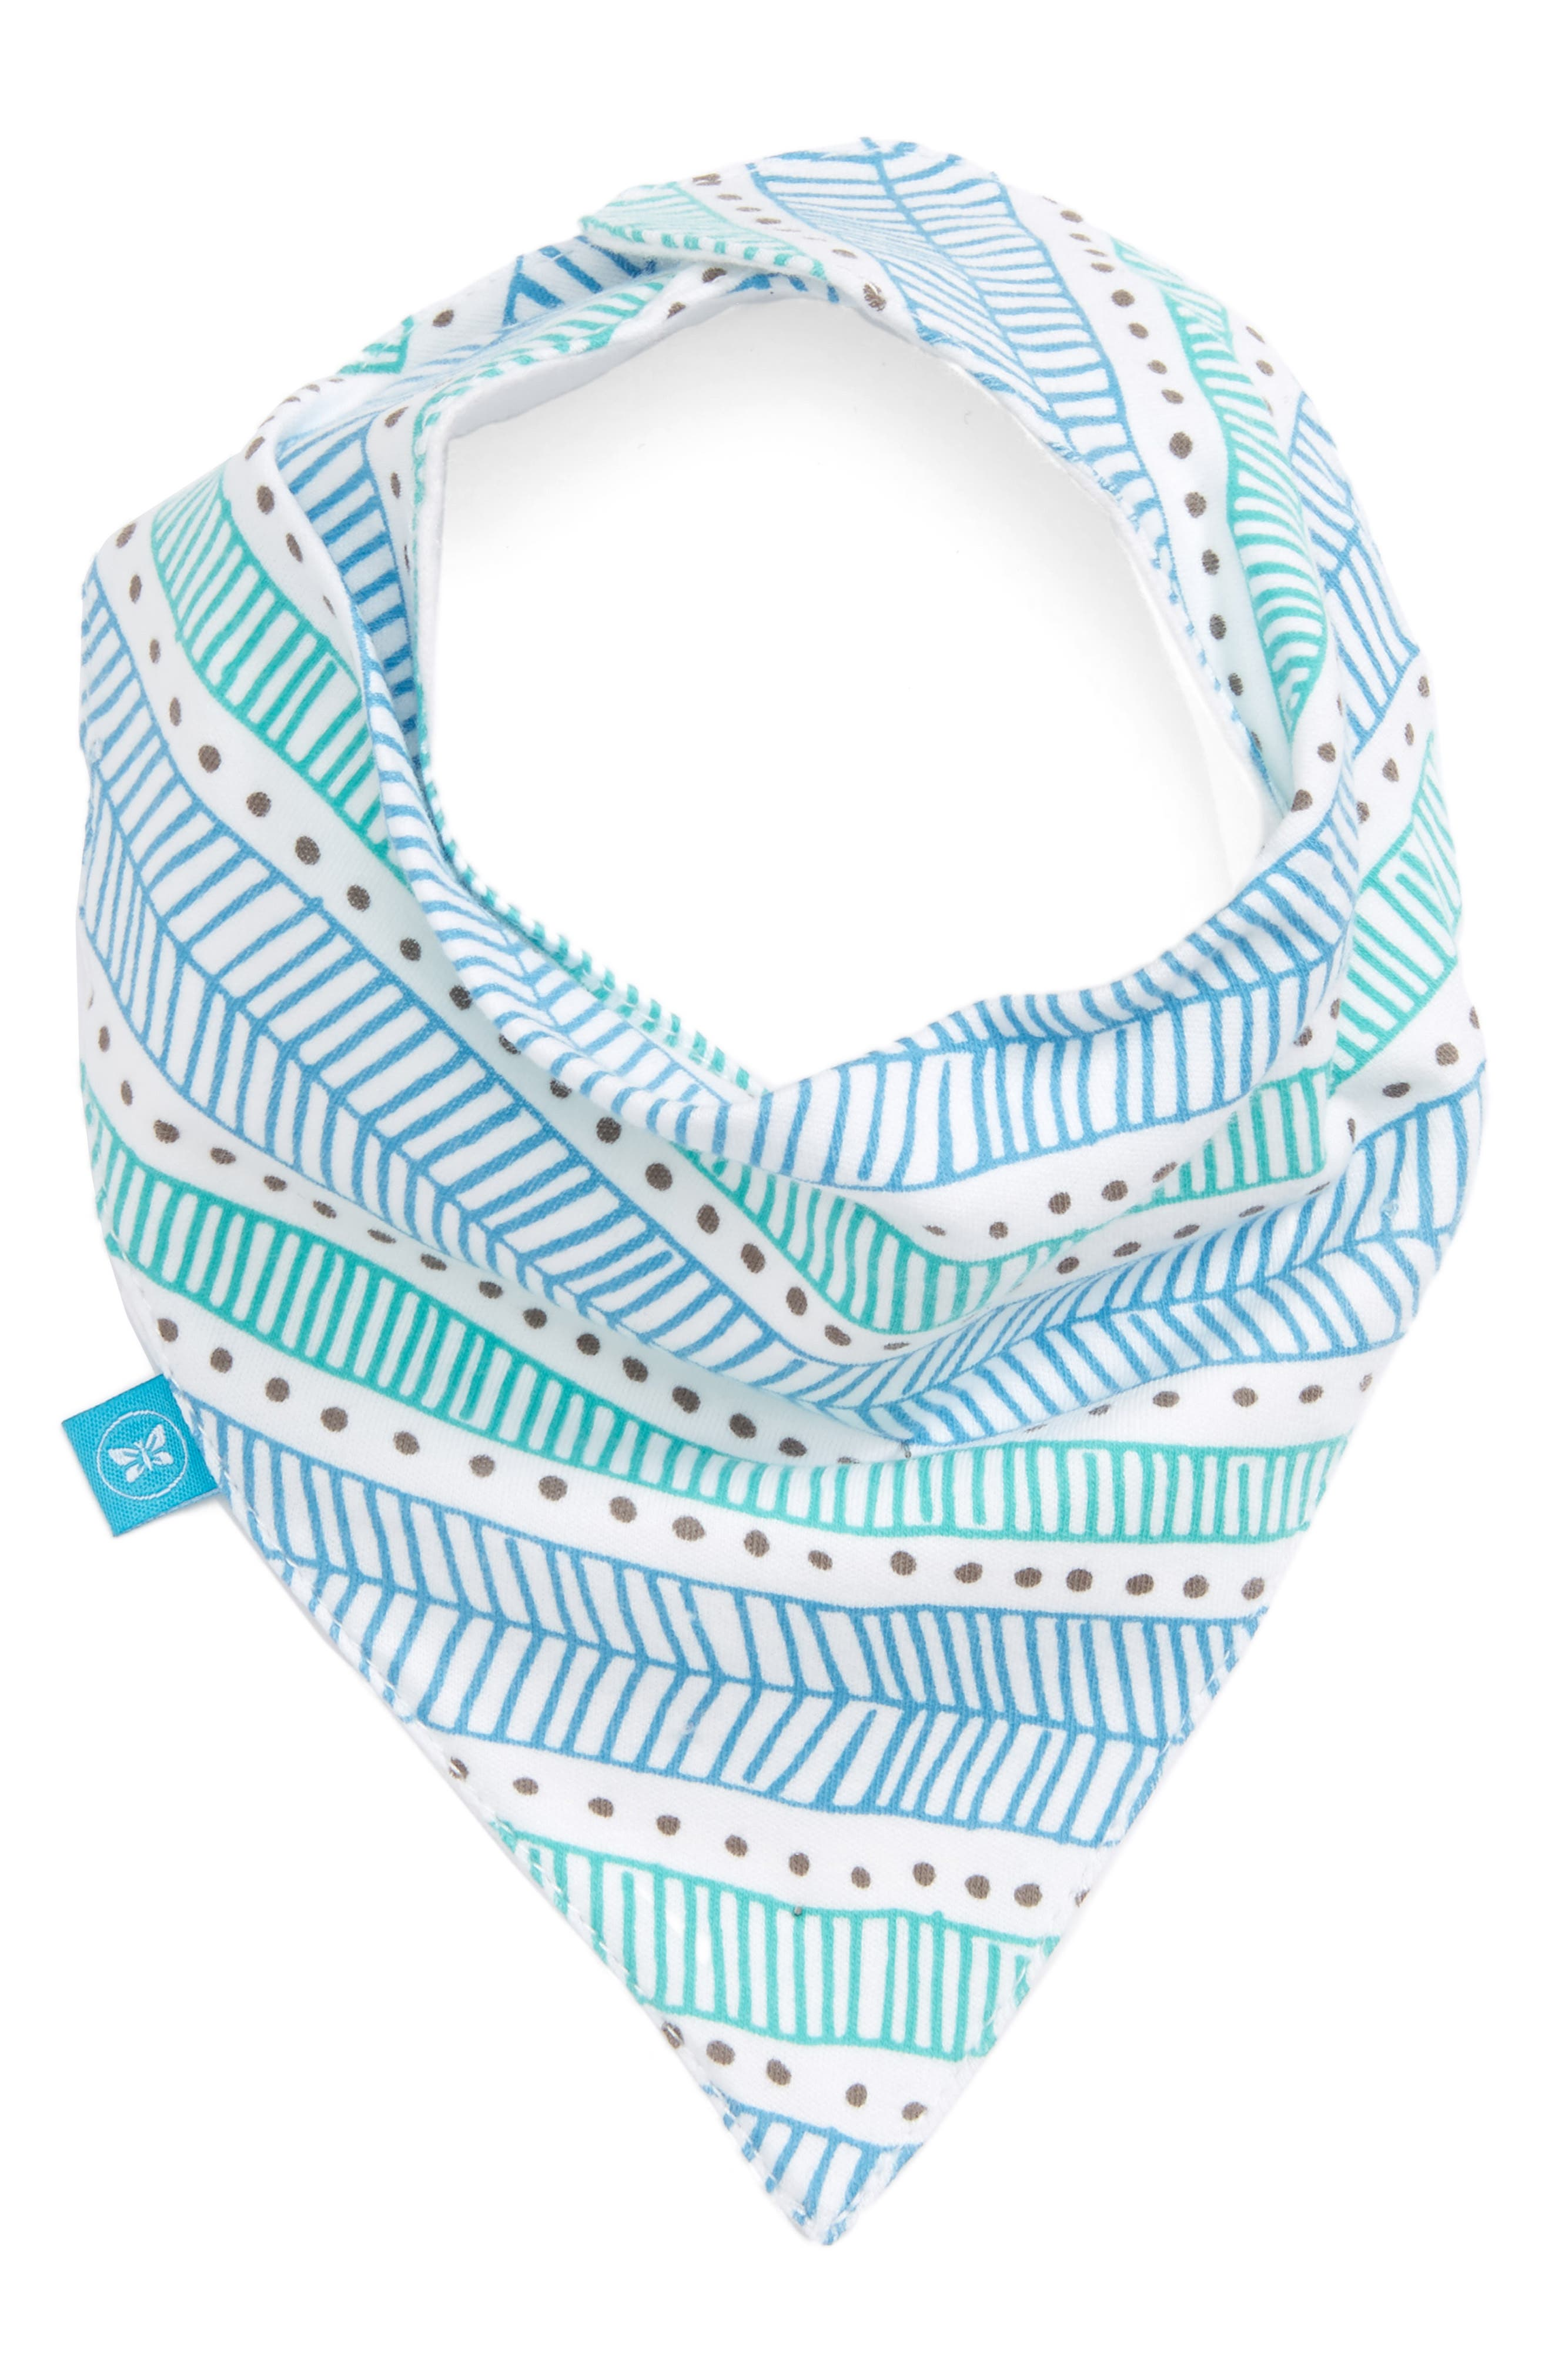 The Honest Company Organic Cotton Bandana Bib